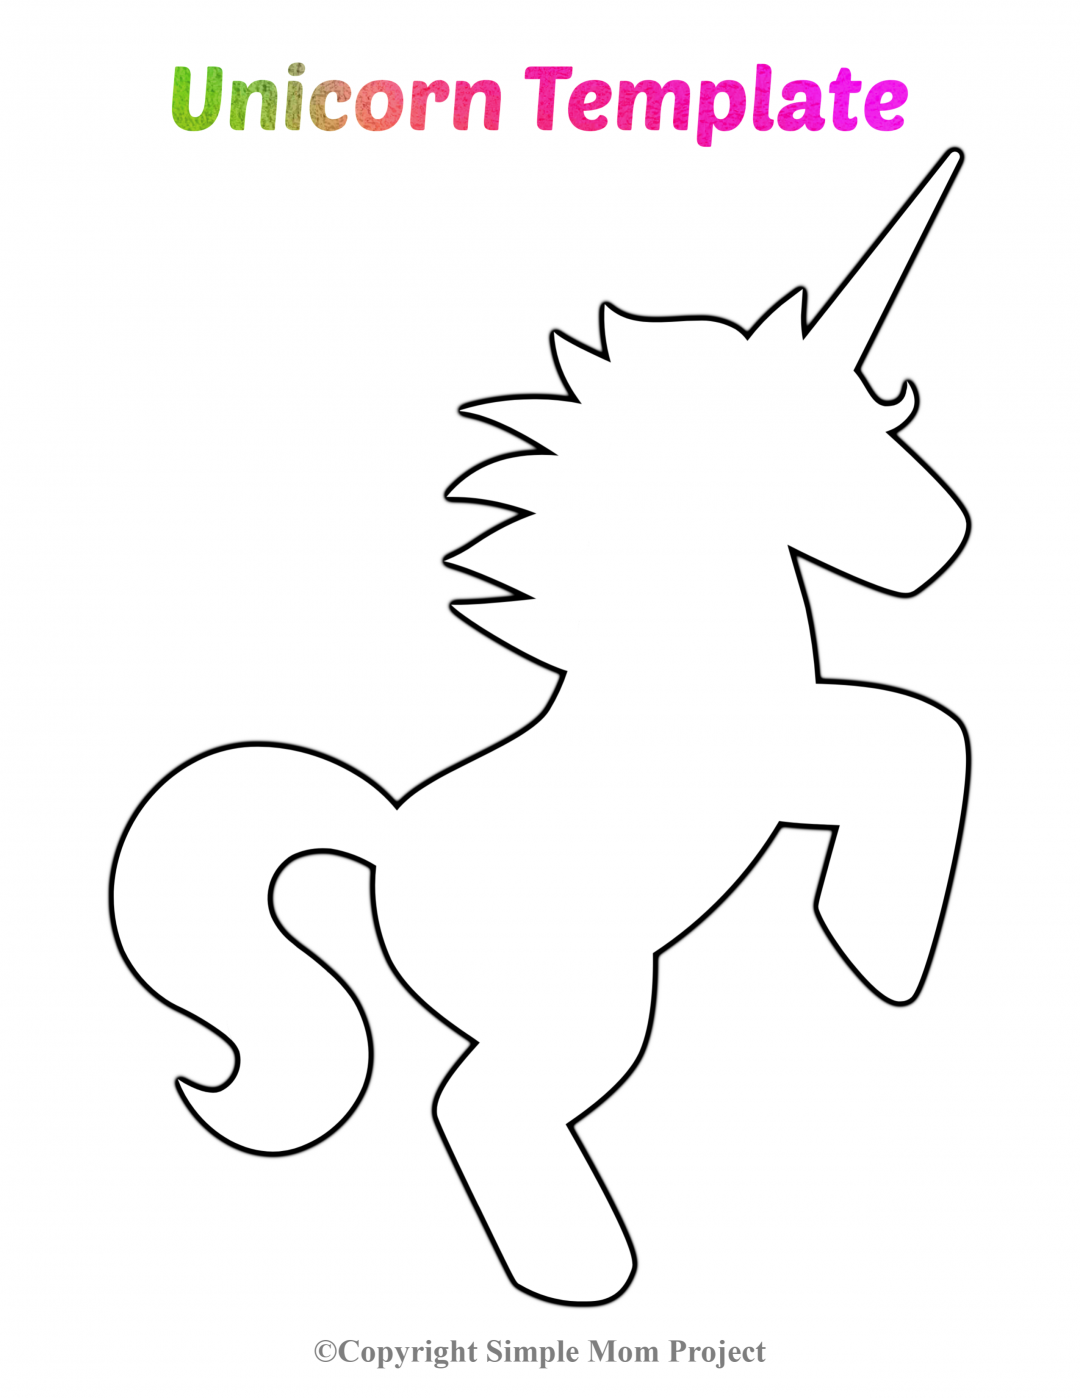 Free Printable Unicorn Template #unicorncrafts